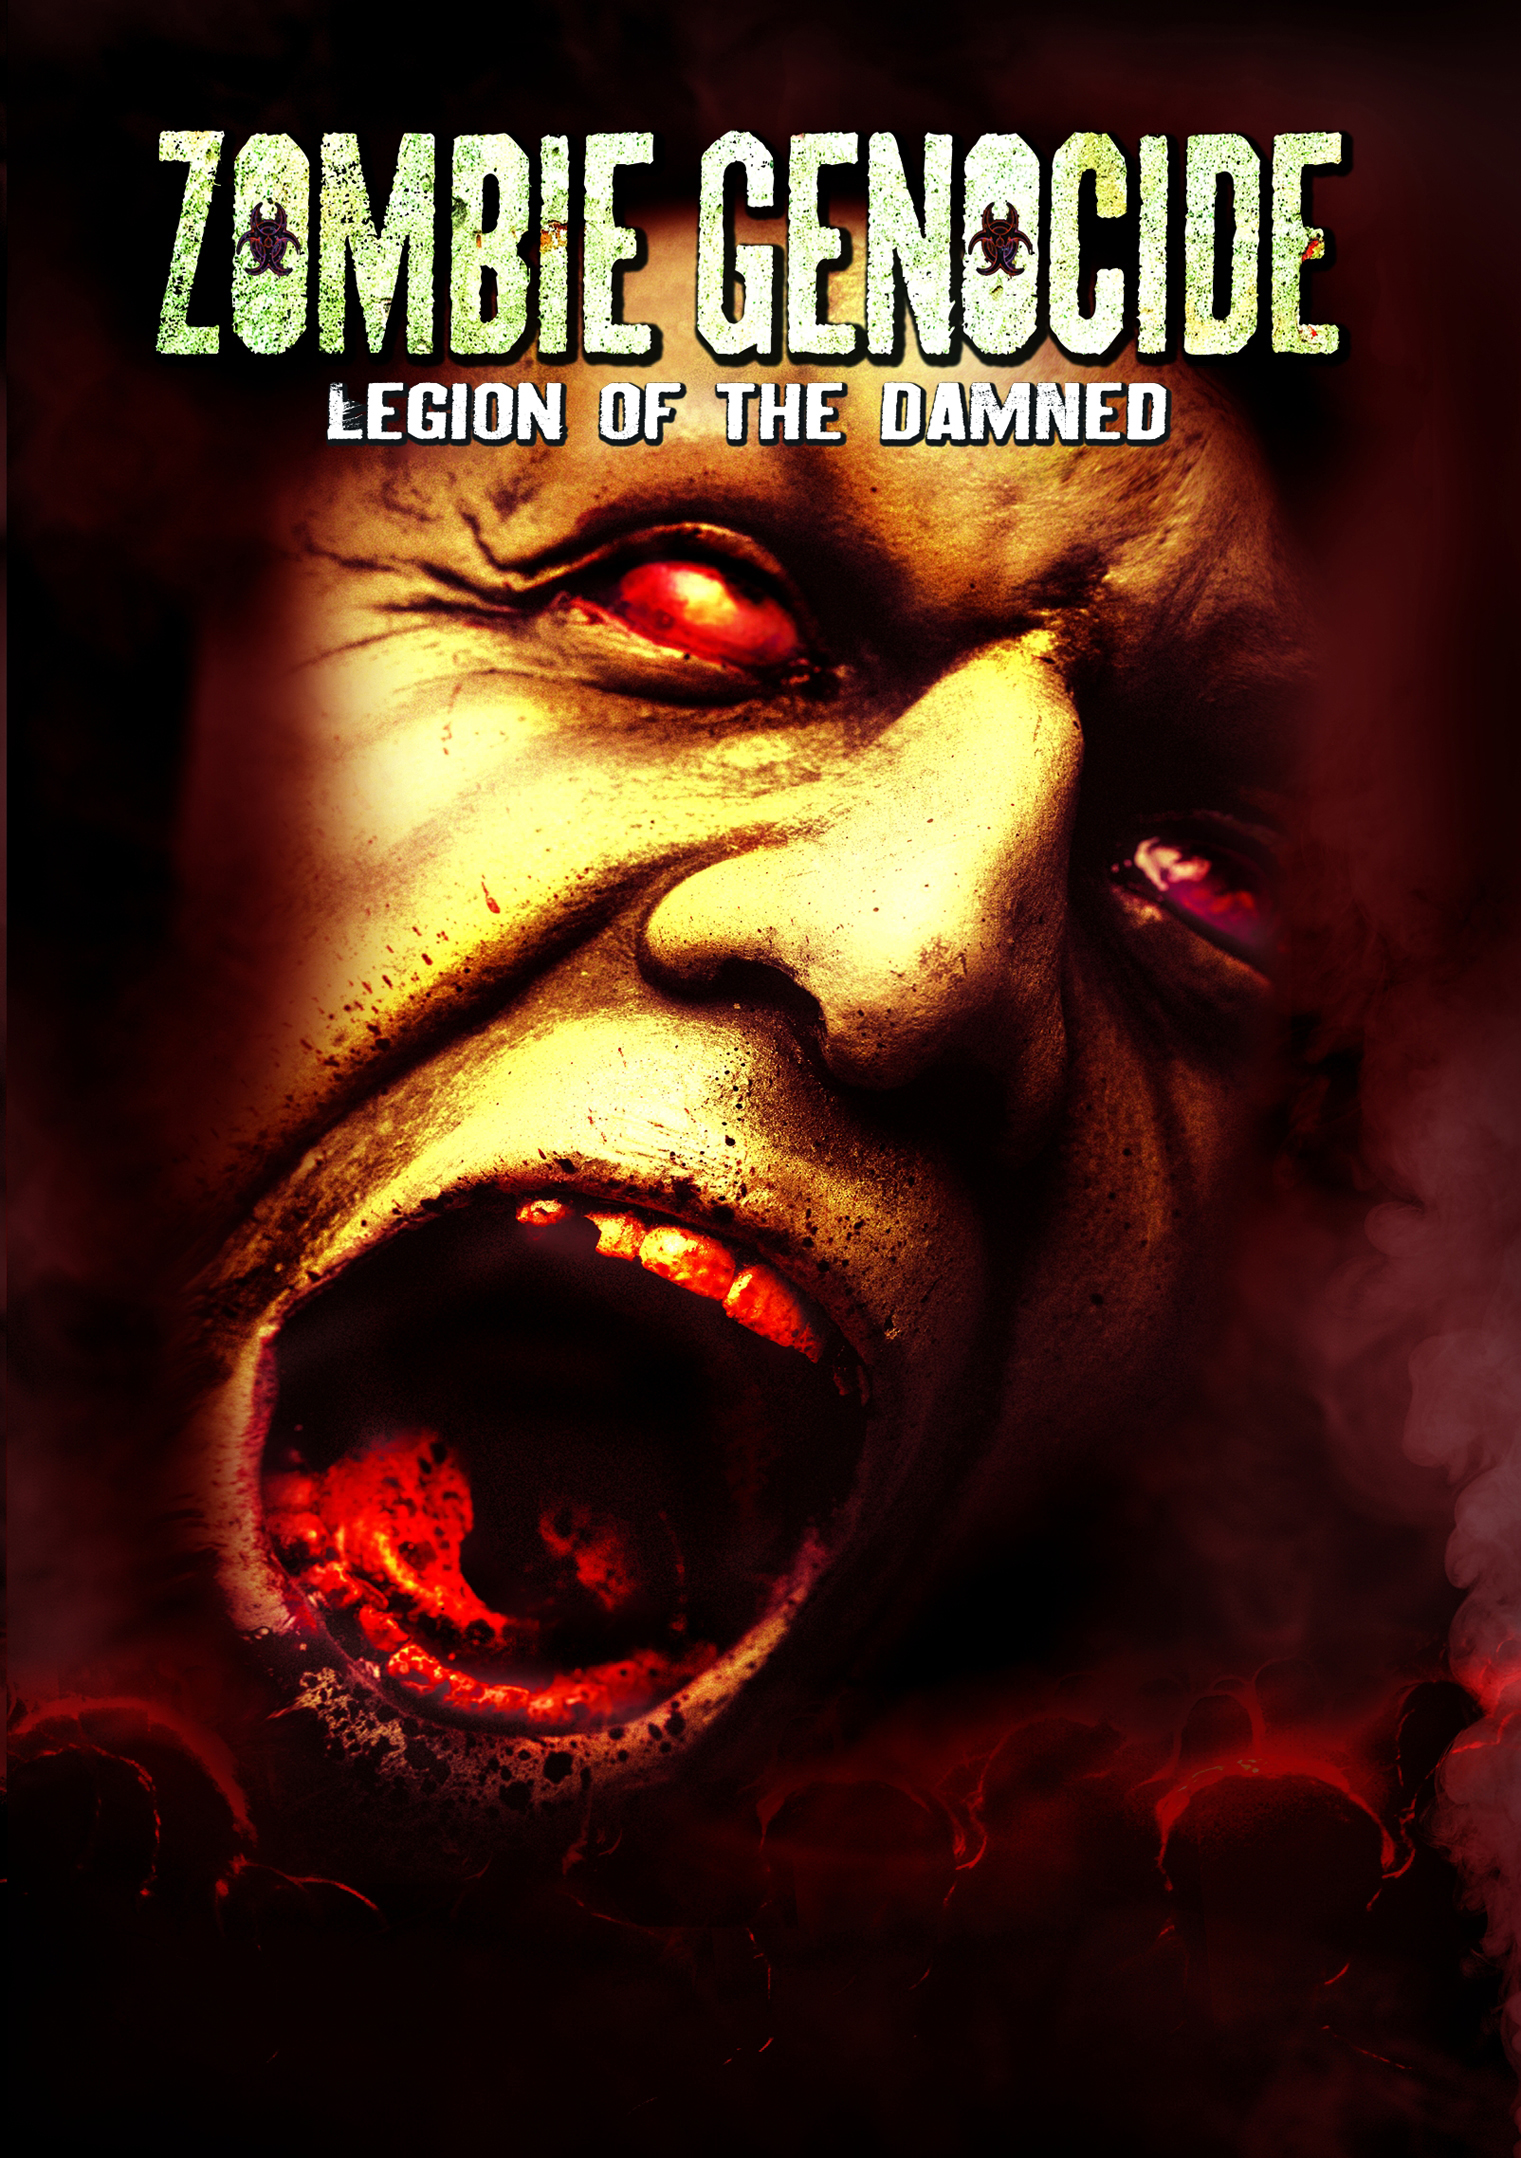 Zombie Genocide: Legion of the Damned